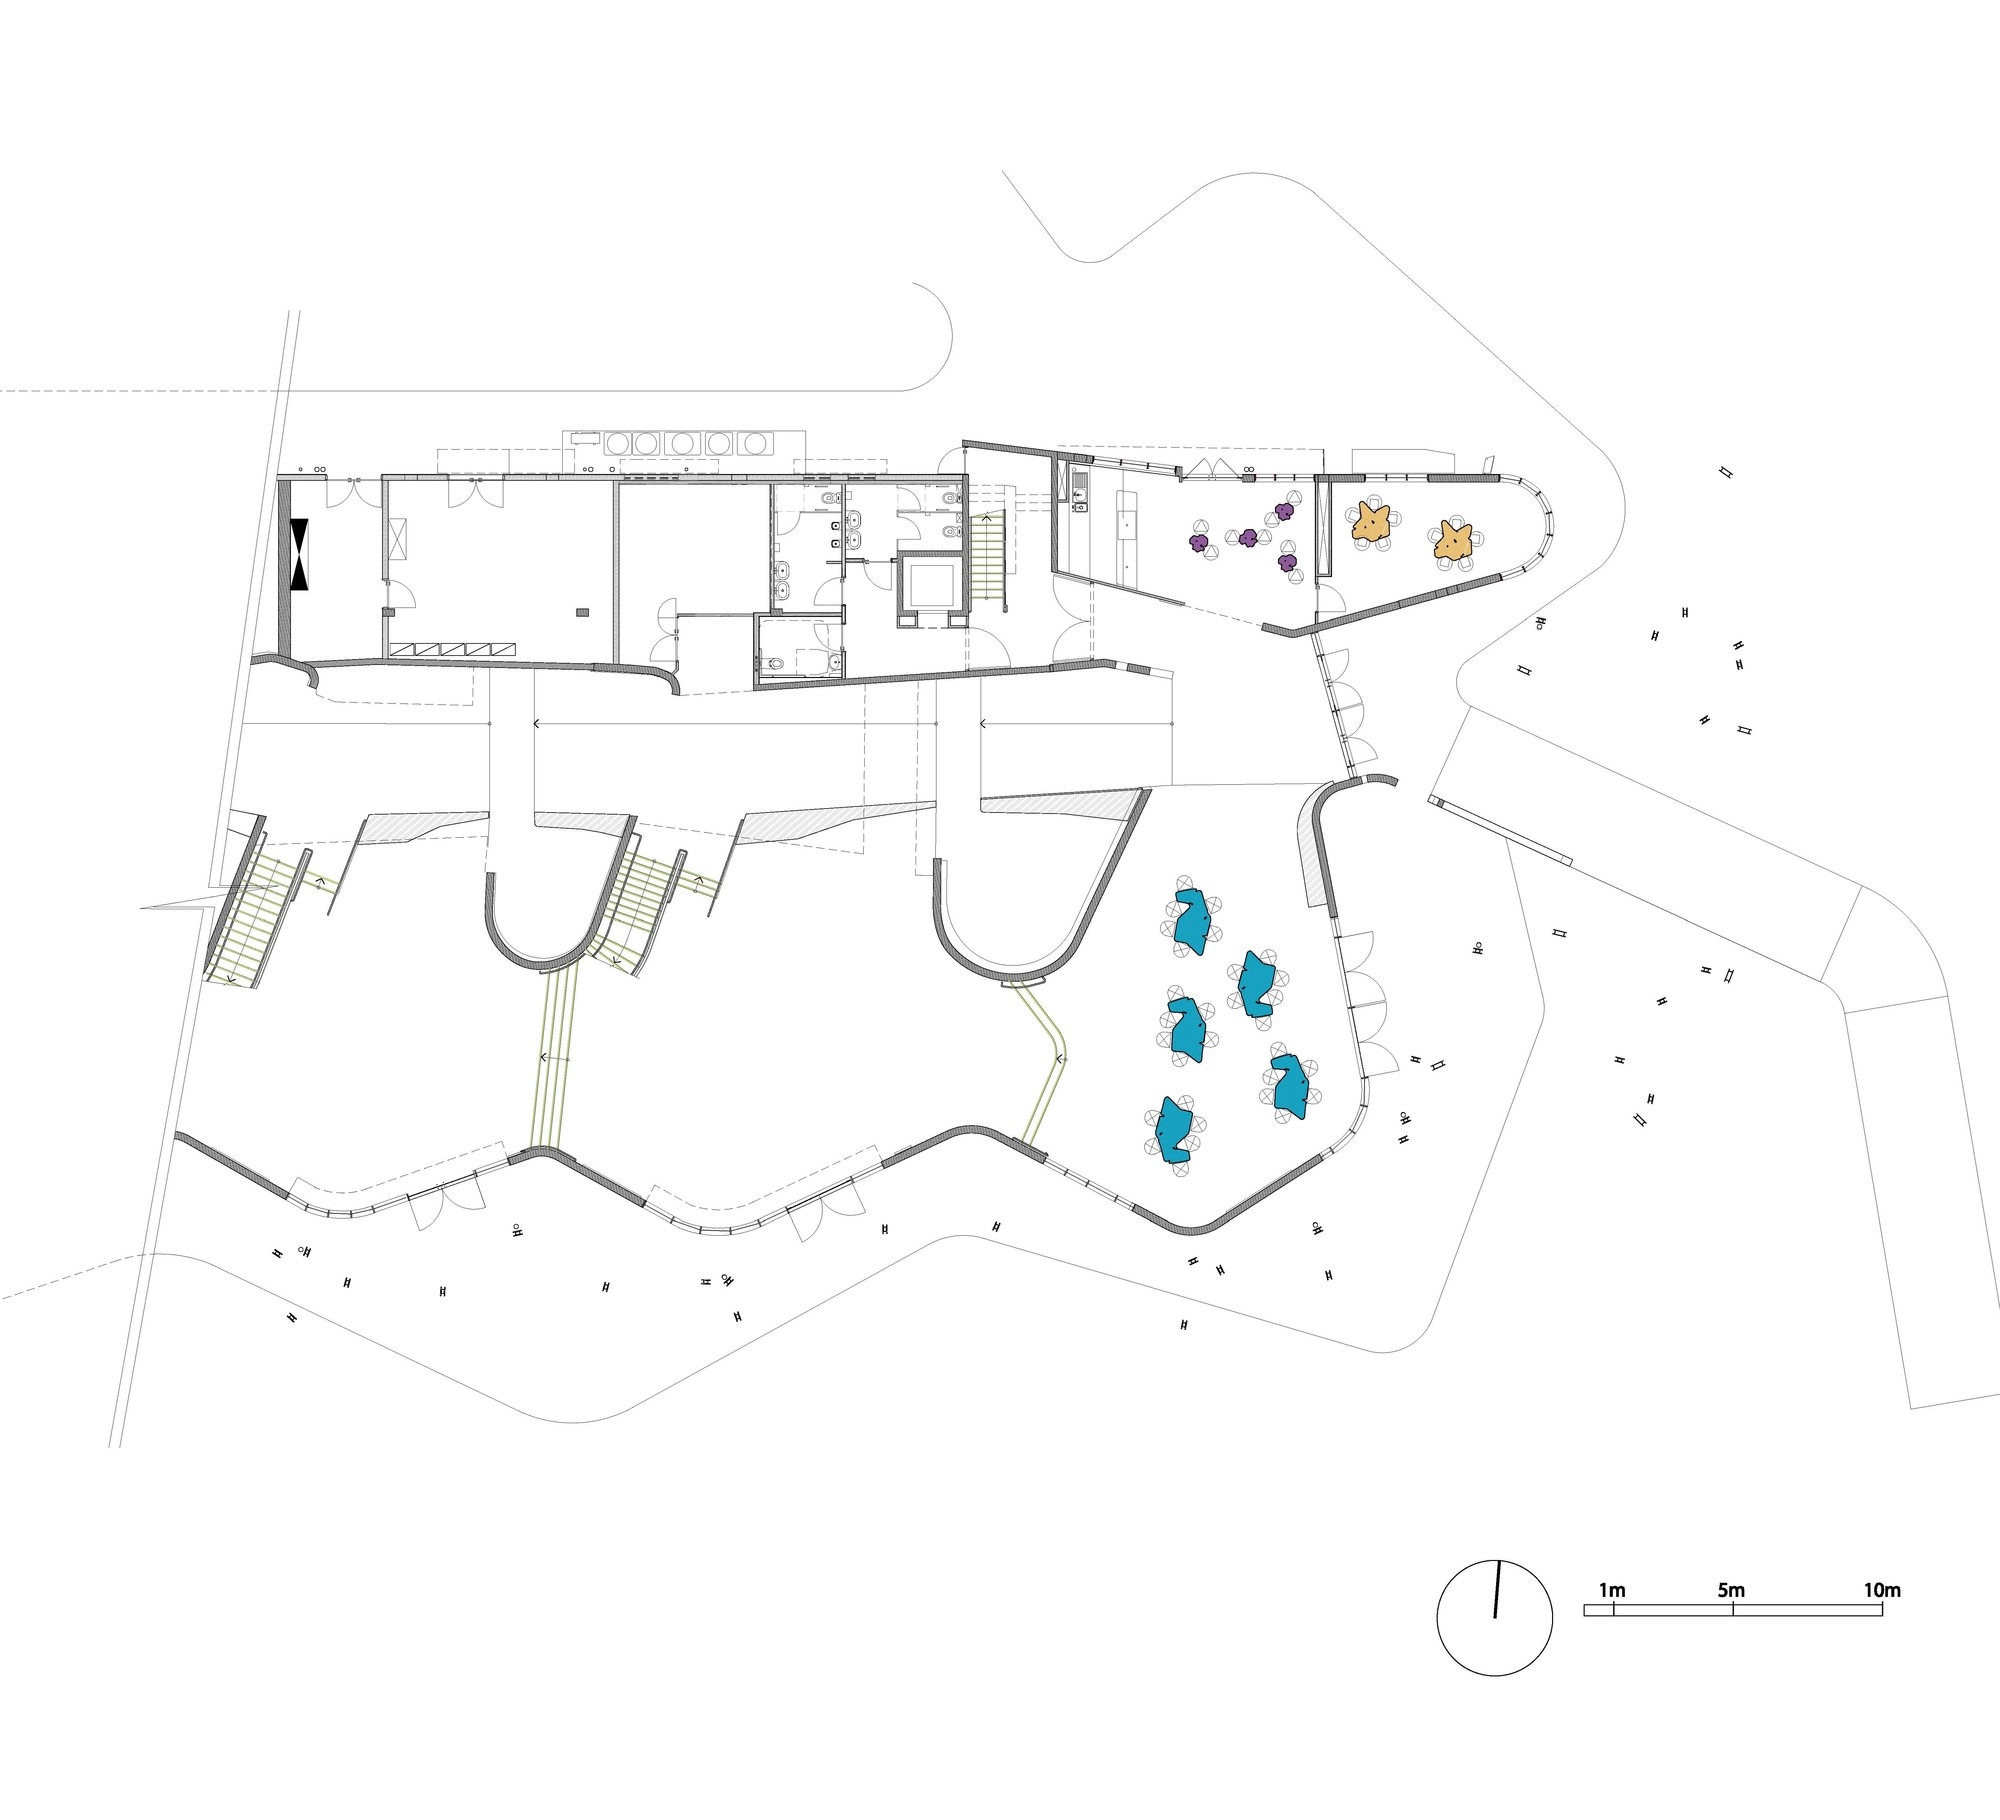 gallery of abedian school of architecture / crab studio - 1